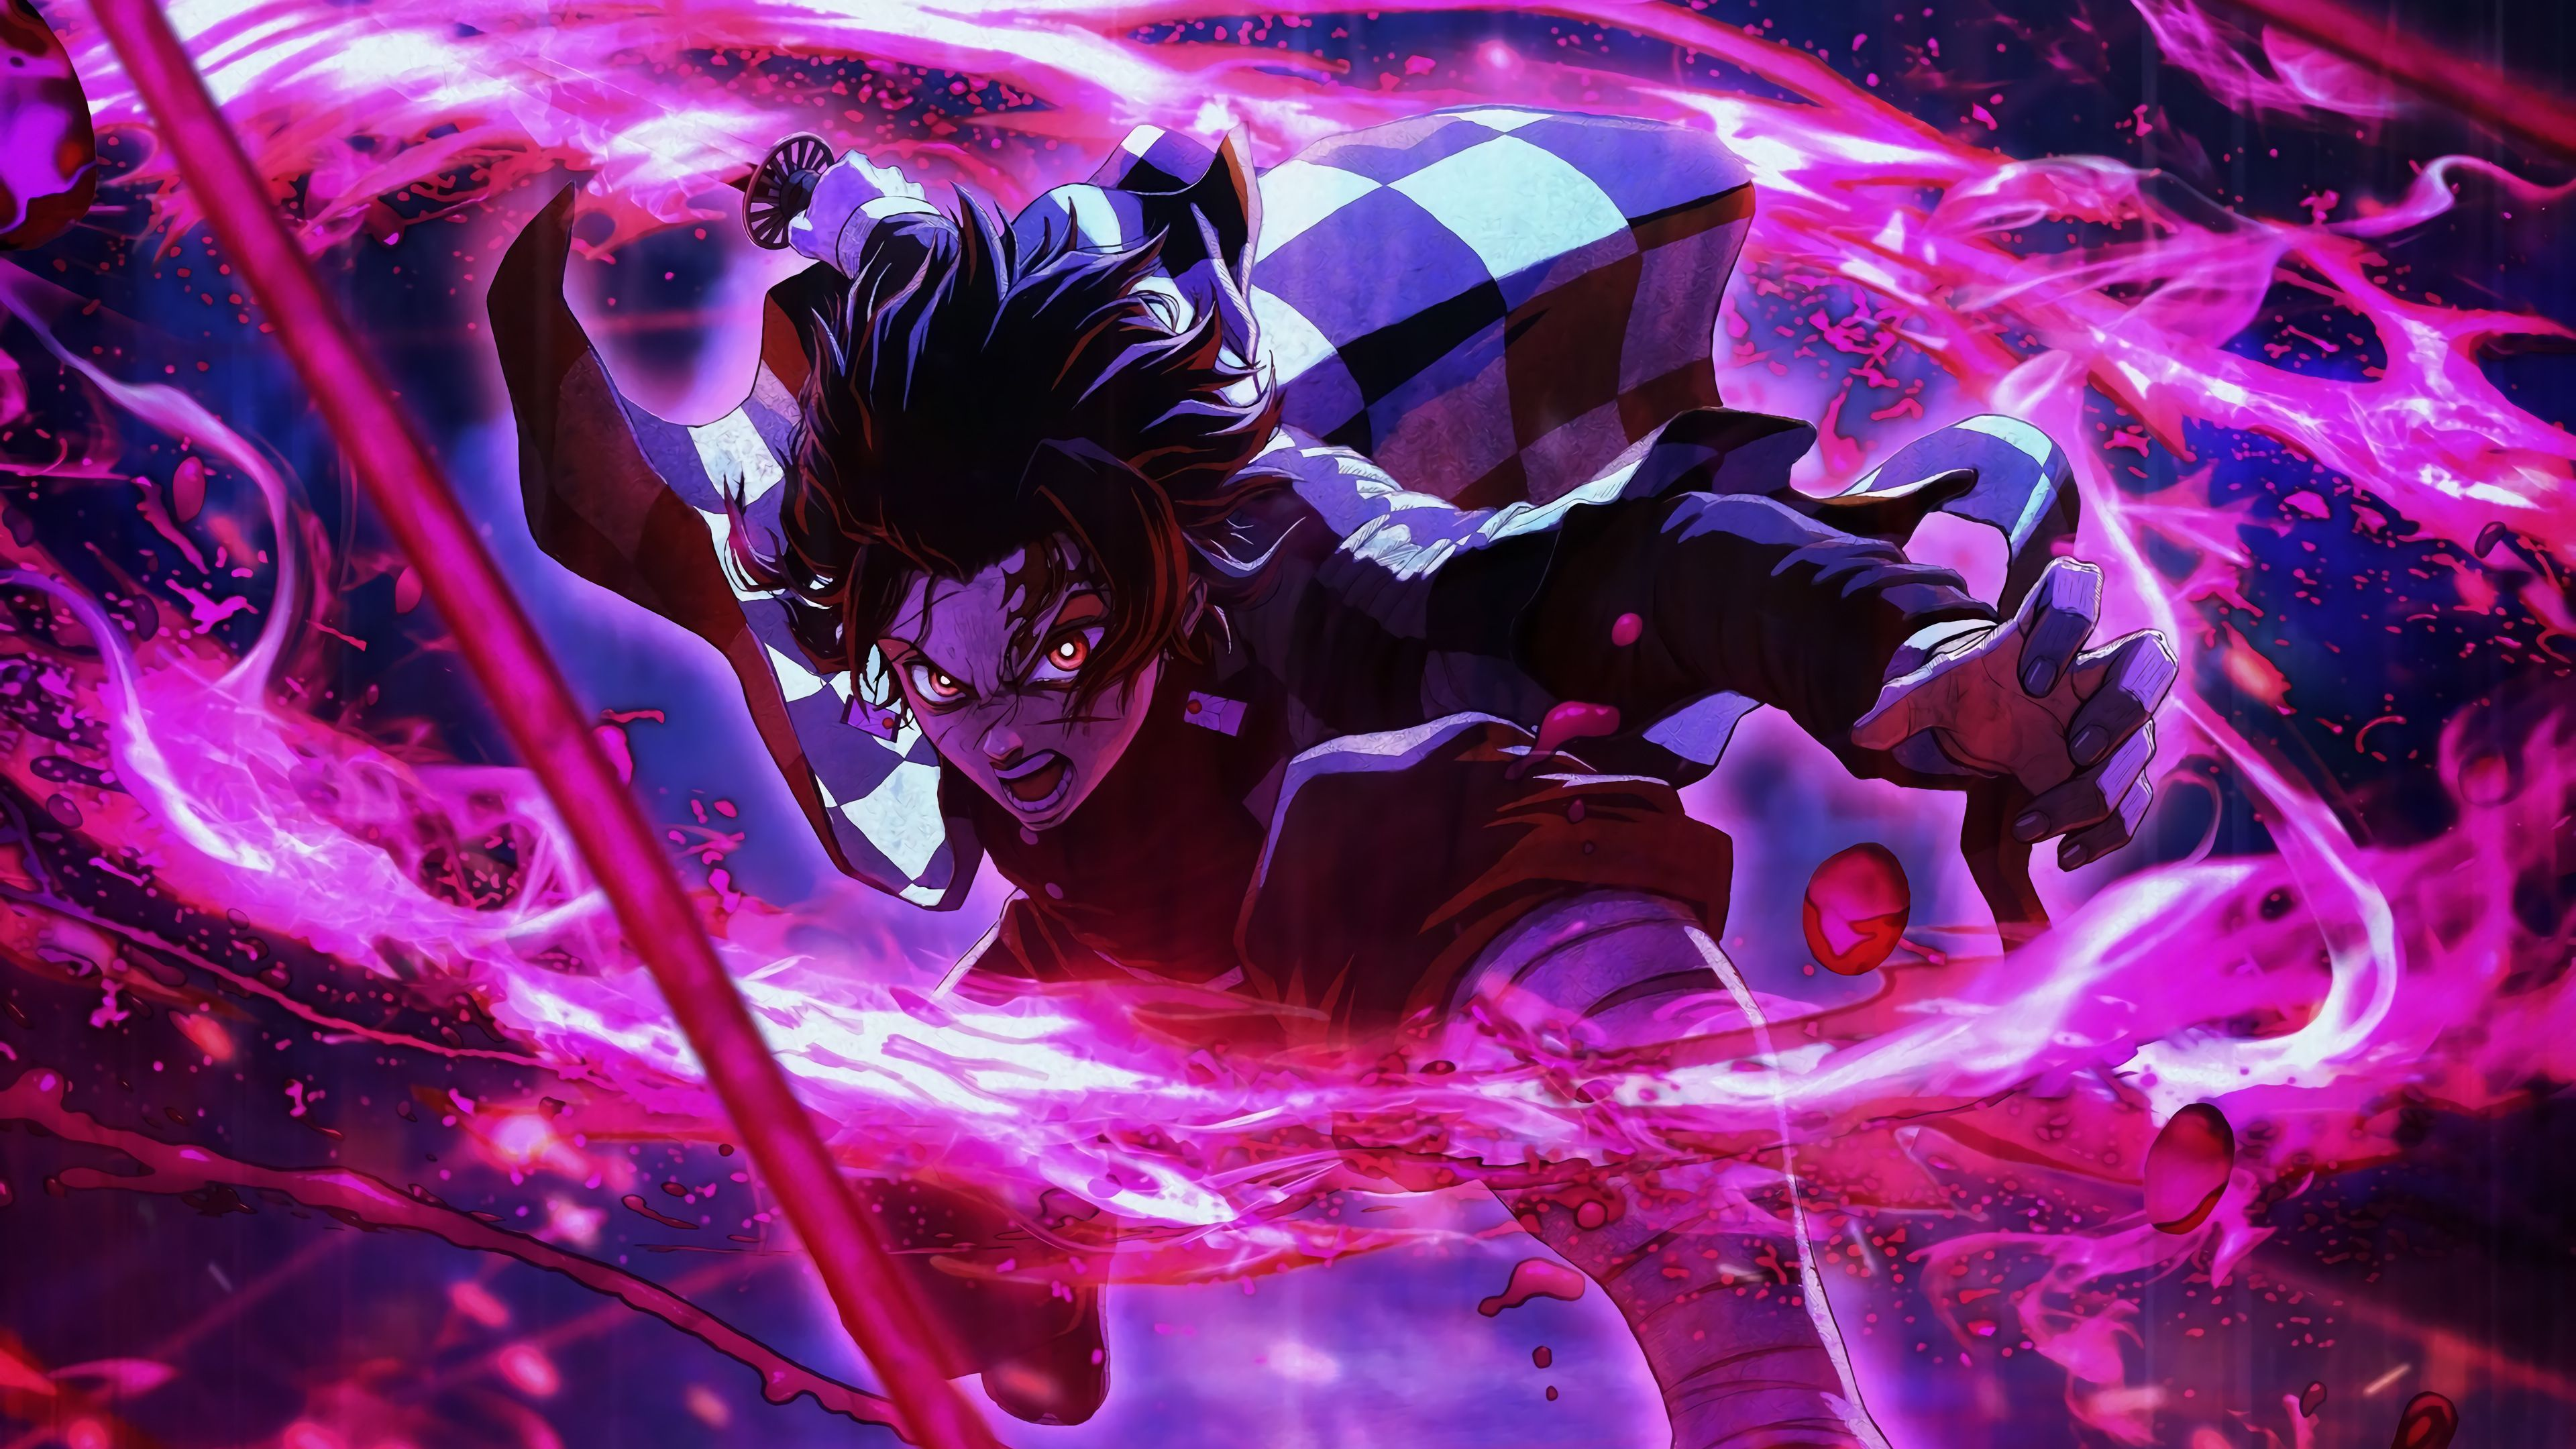 Tanjiro The Demonslayer In 2020 Hd Anime Wallpapers Cool Anime Wallpapers Anime Wallpaper